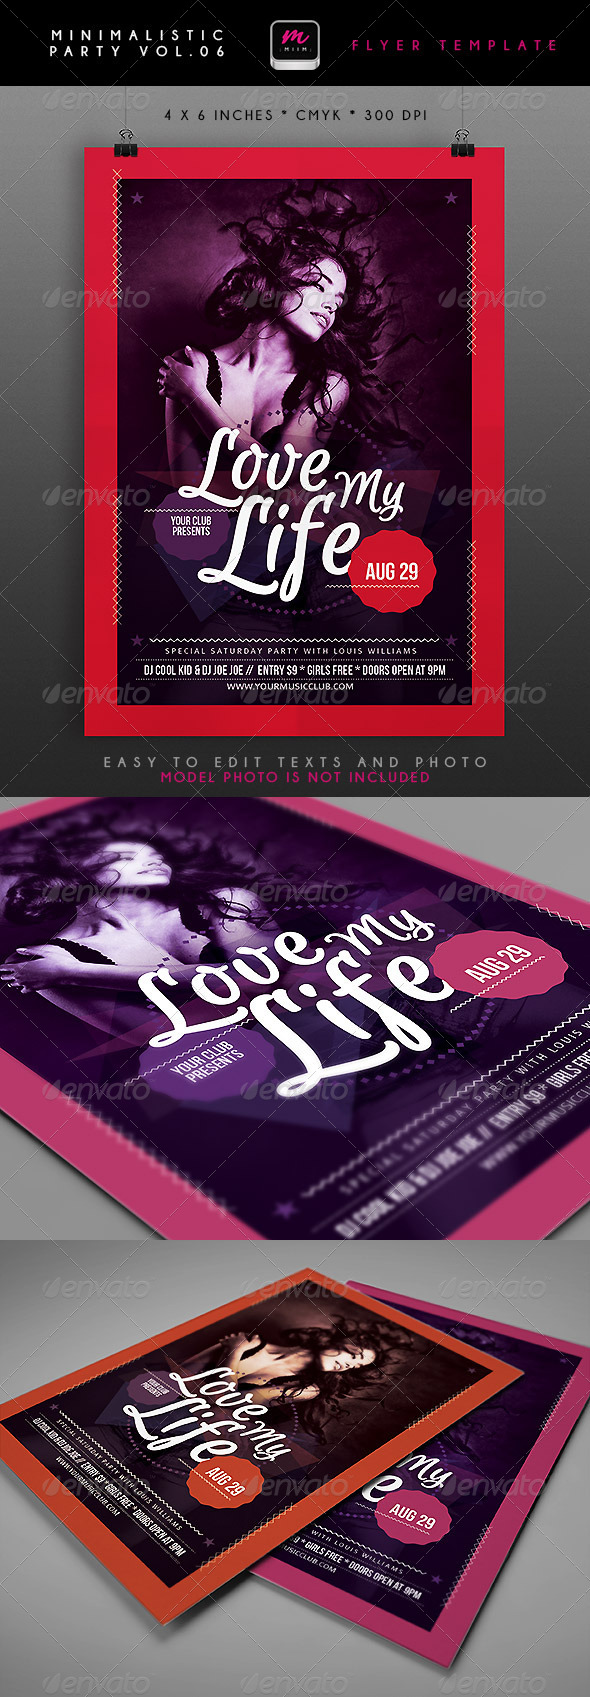 GraphicRiver Minimalistic Party Flyer 6 4869618